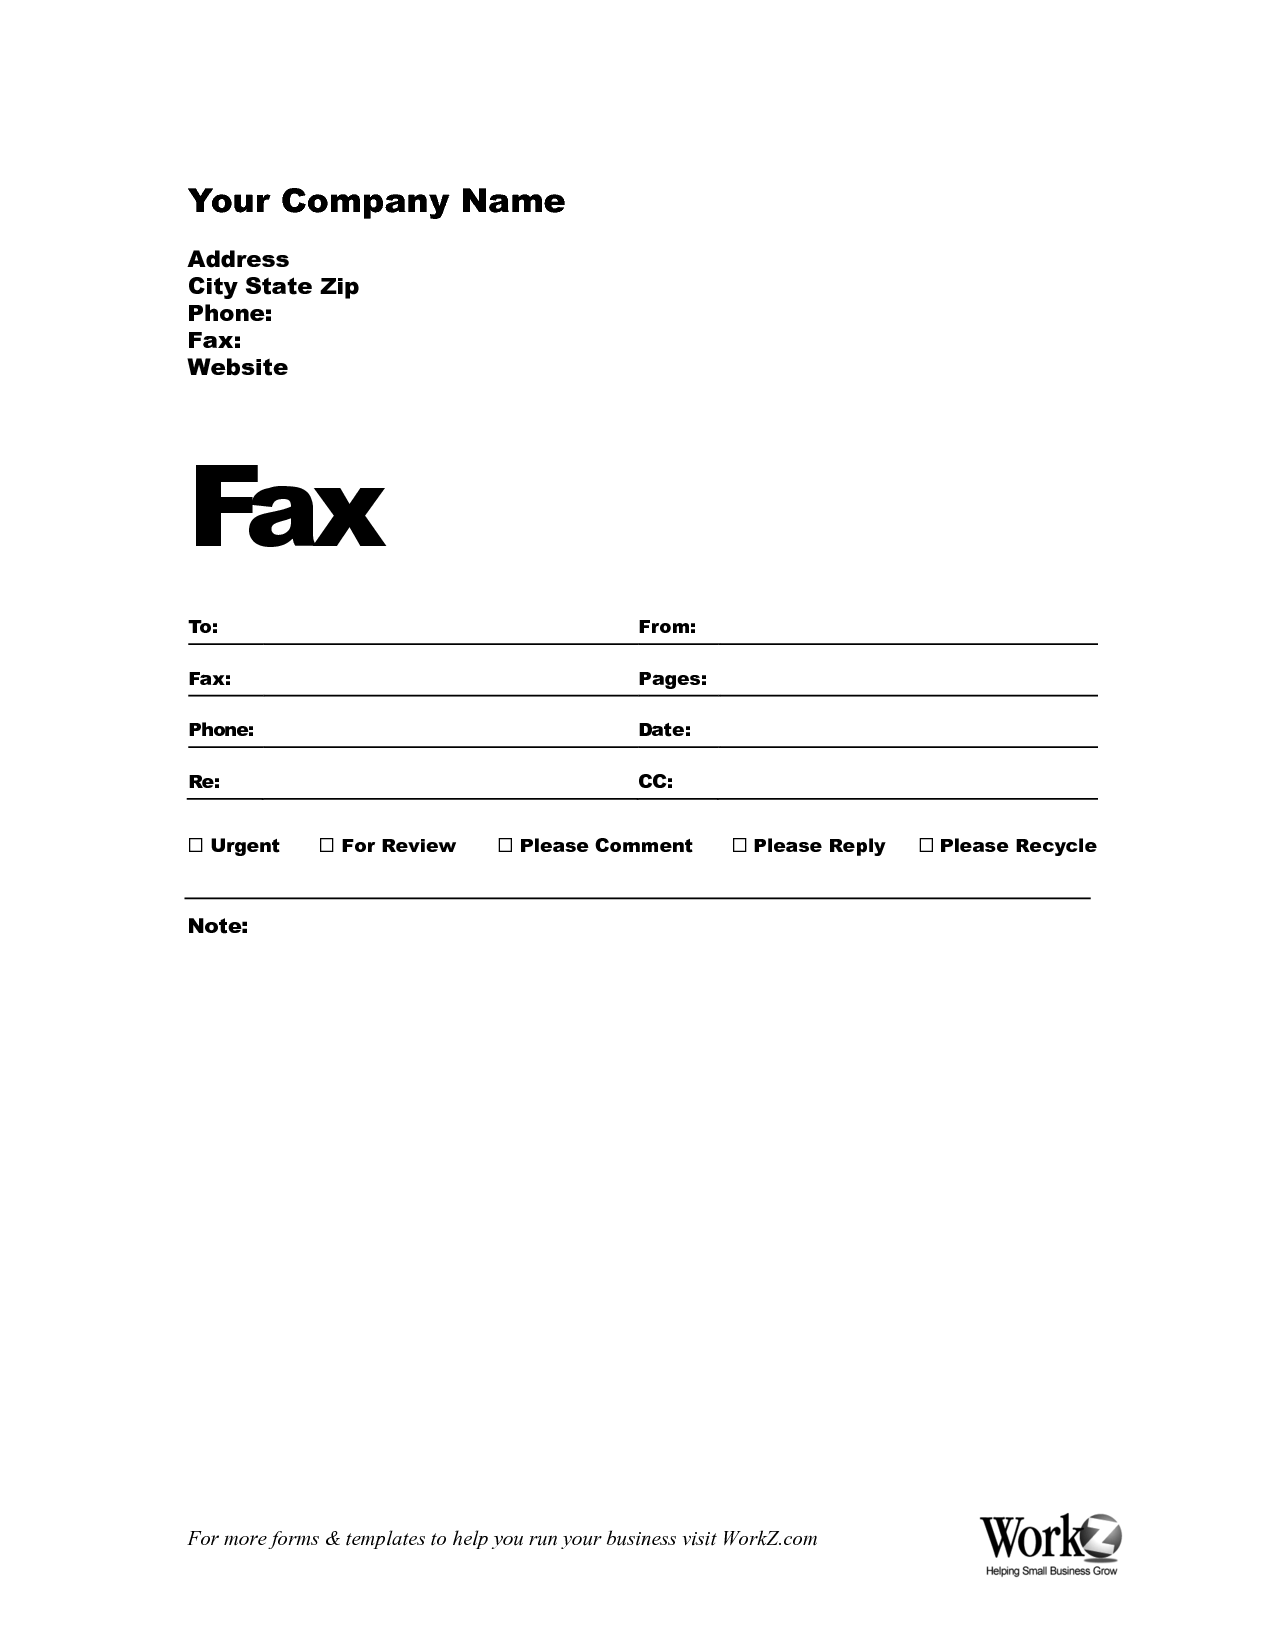 free cover sheet template - Examples Of Fax Cover Letters